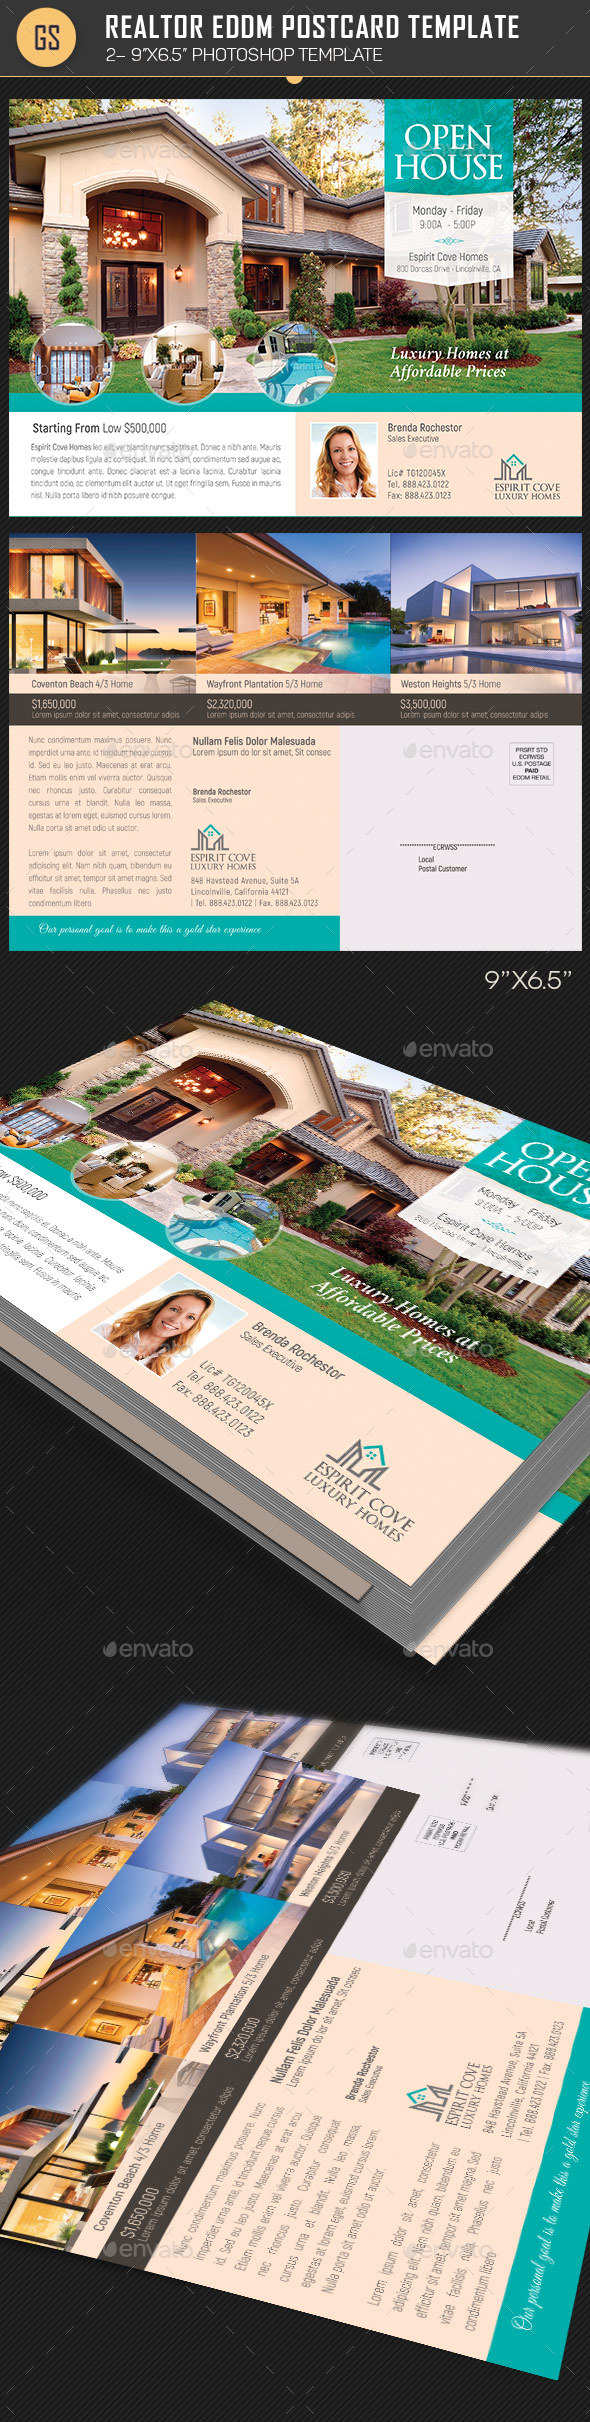 Real Estate EDDM Postcard Template - Corporate Flyers